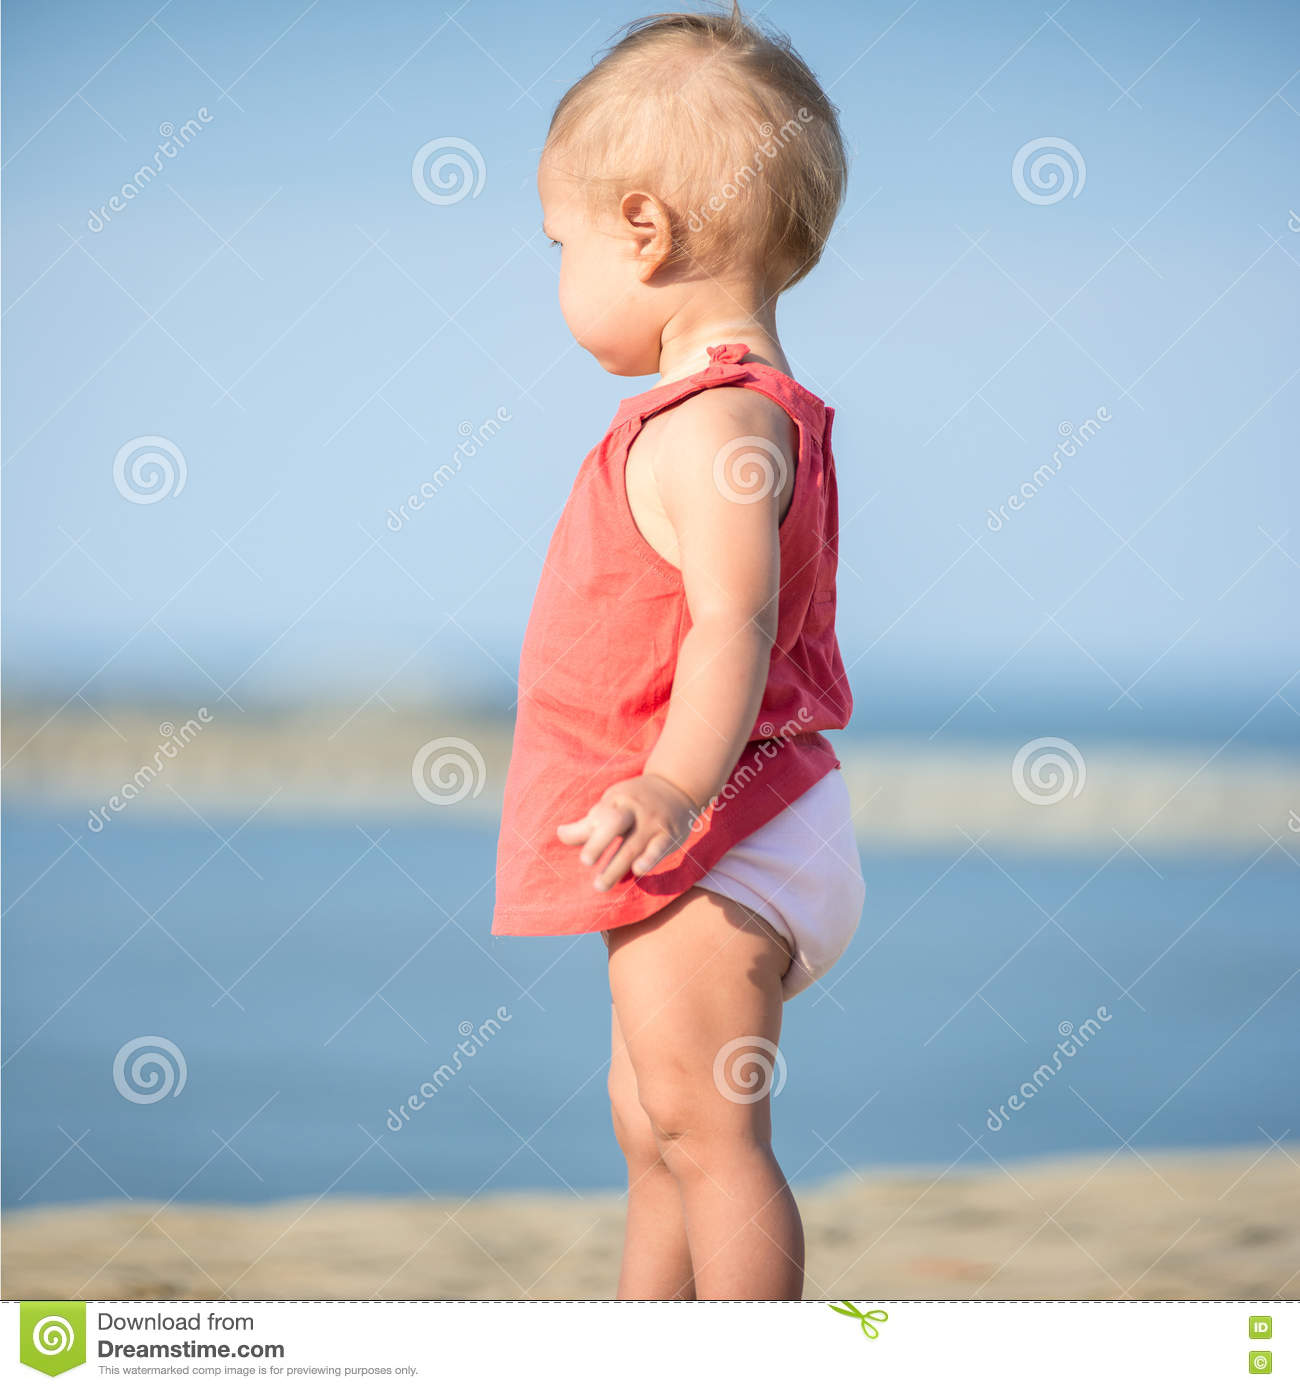 Adorable Little Girl Playing With Beach Toys During: Baby Girl In Red Dress Playing On Sandy Beach Near The Sea